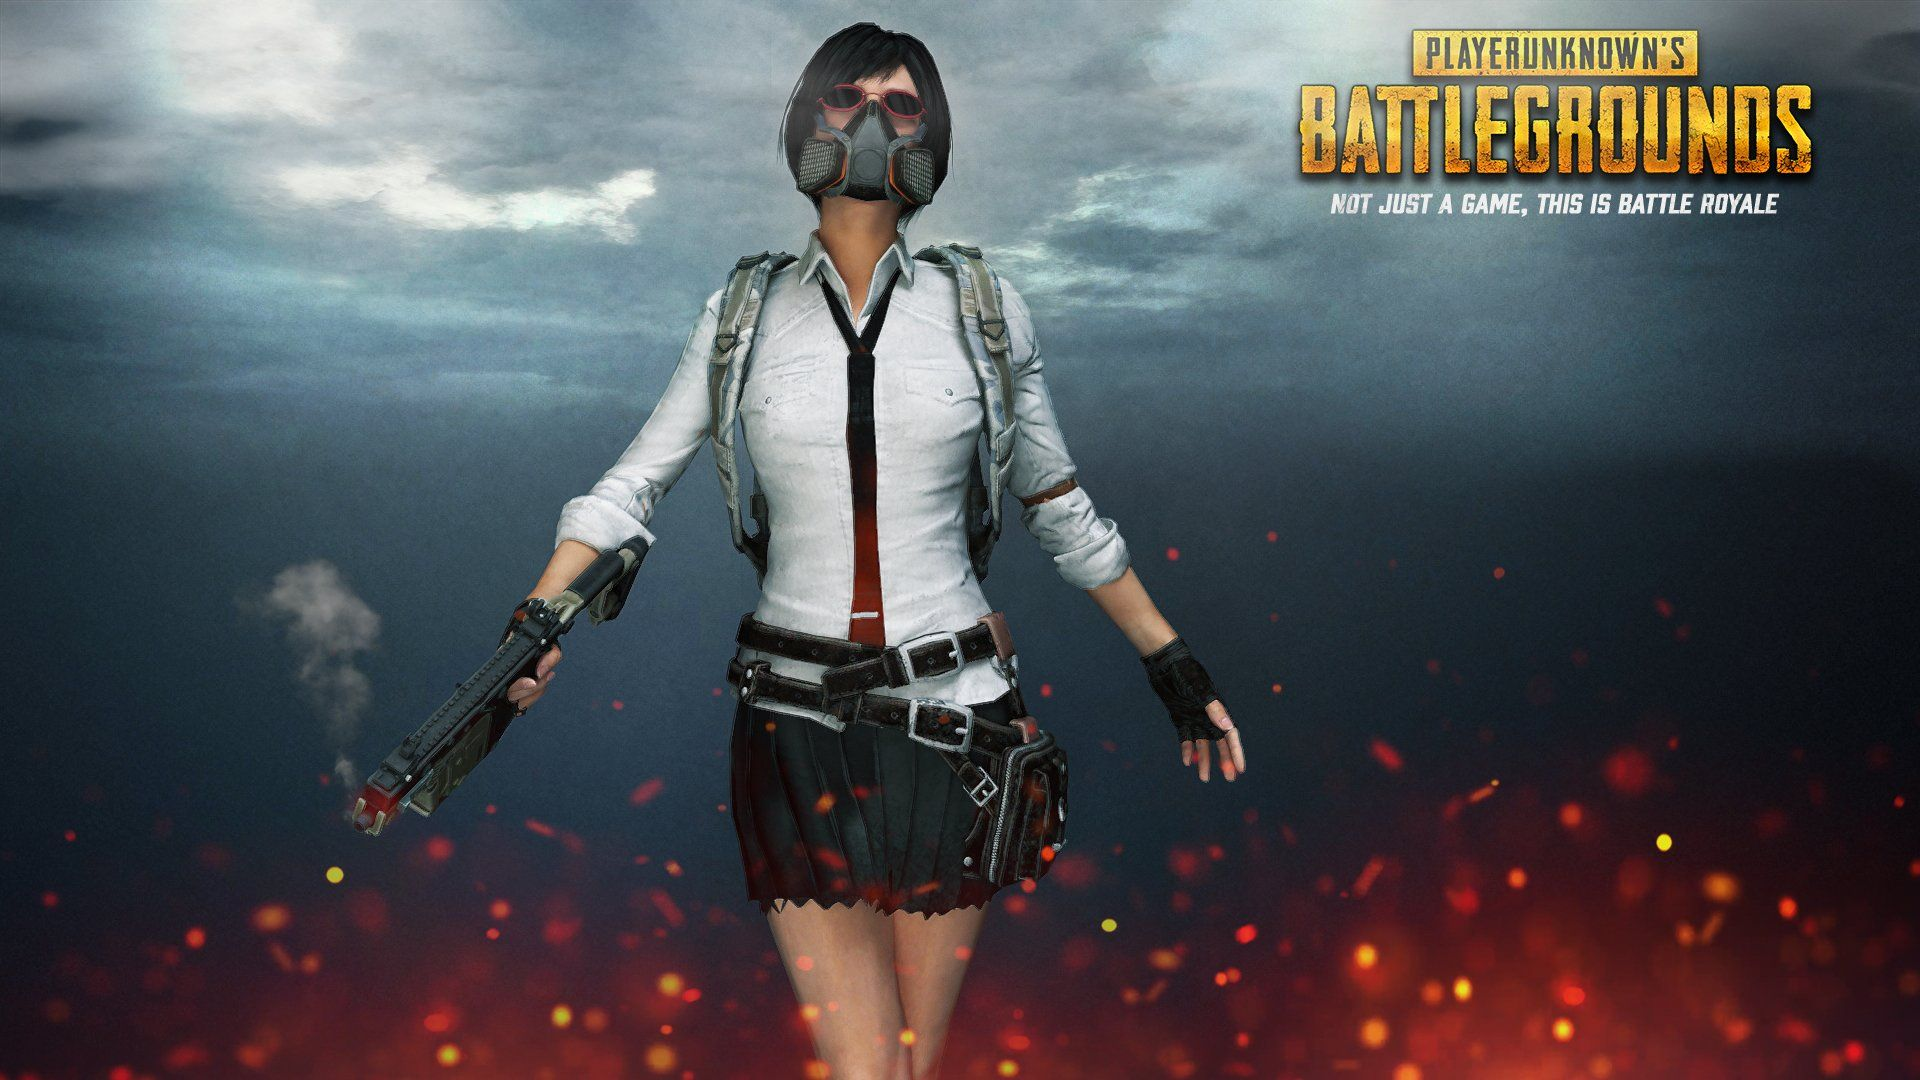 Video Game Playerunknown S Battlegrounds Wallpaper Player Unknown Samsung Wallpaper Android Wallpaper